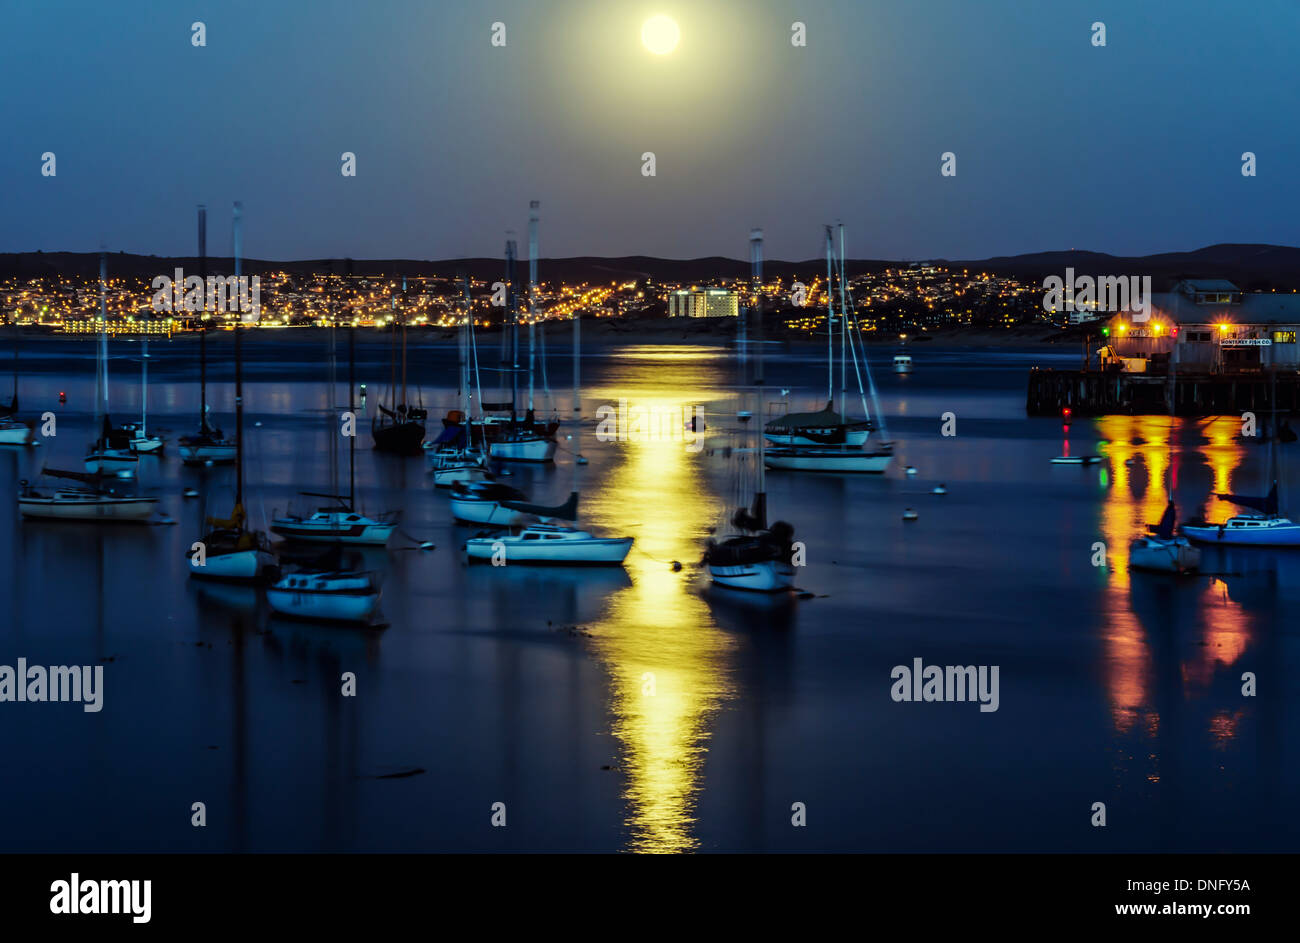 The Moon rising over Monterey Bay. Monterey, California, United States. - Stock Image